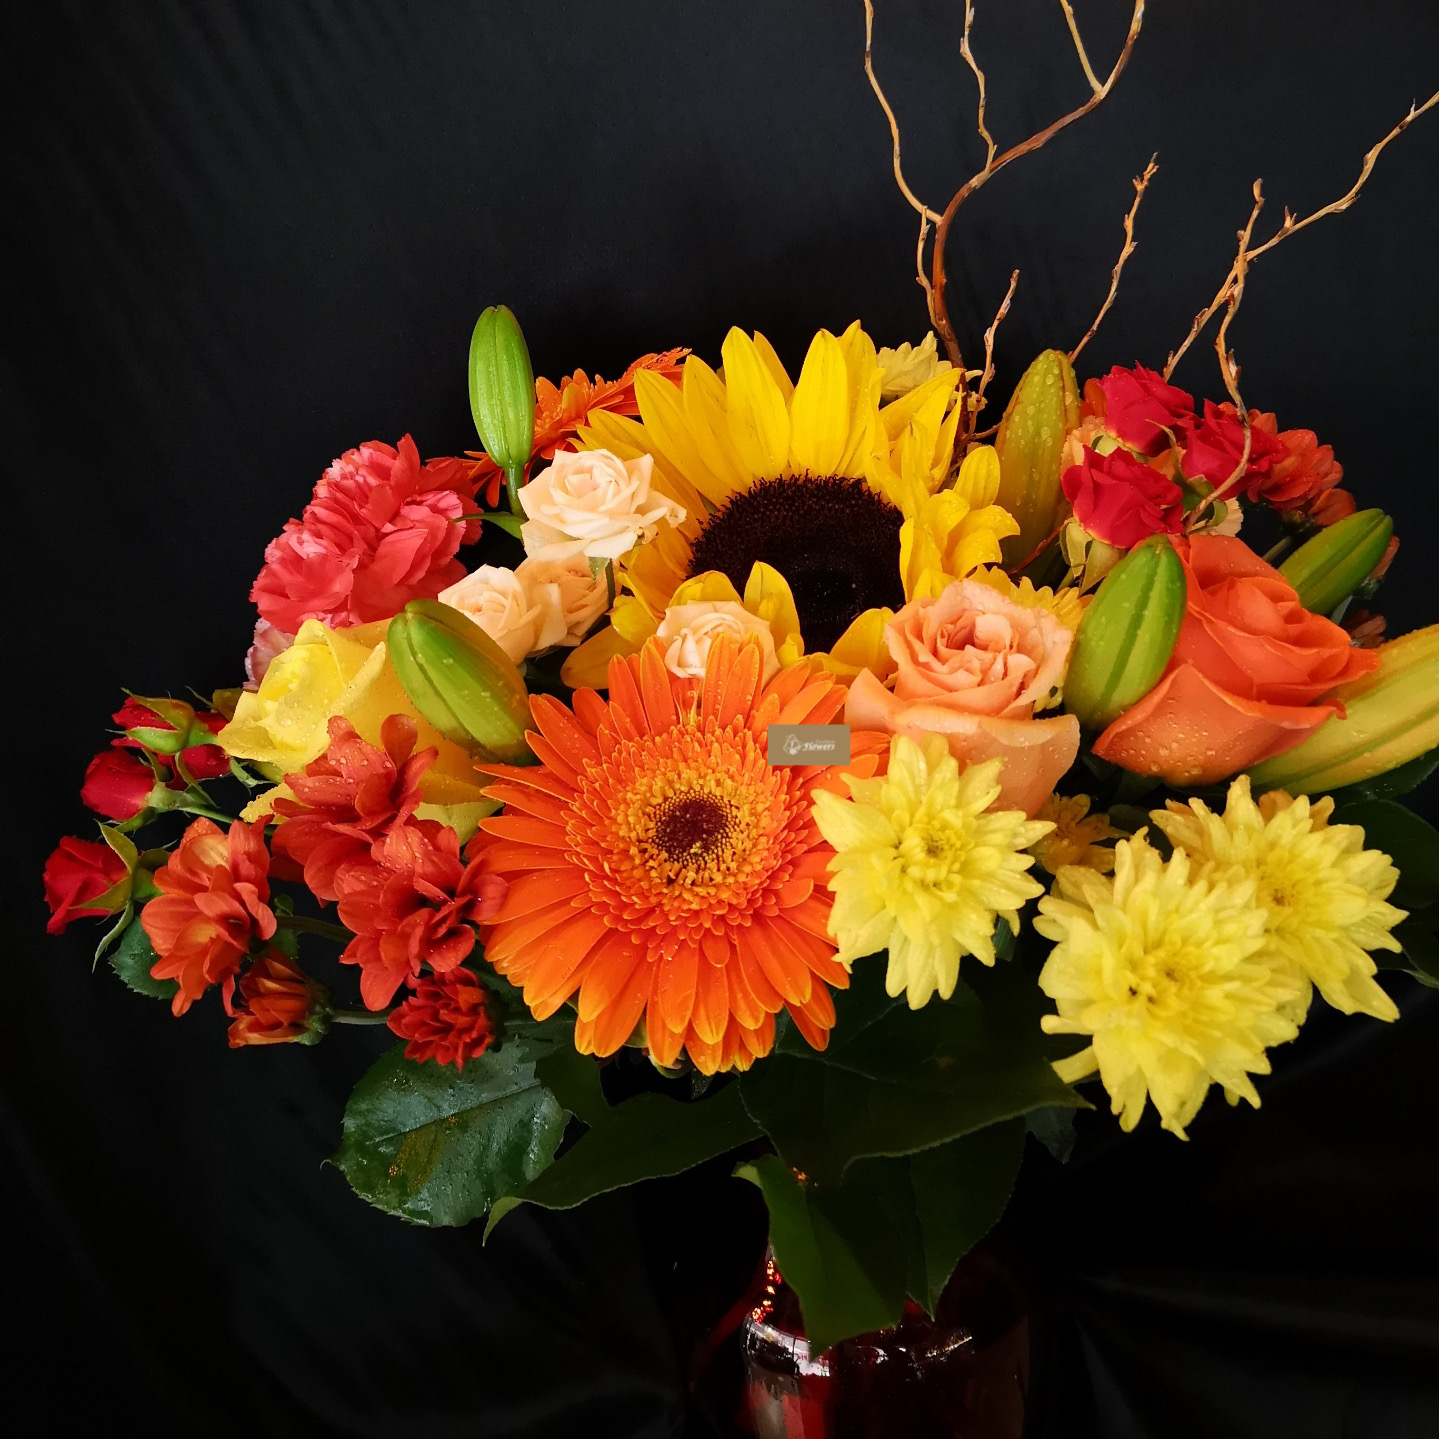 Fall Color Flower Mixture In Vase With Lilies Roses Sunflowers Gerbra Carnations And Daisy Fashion Flowers